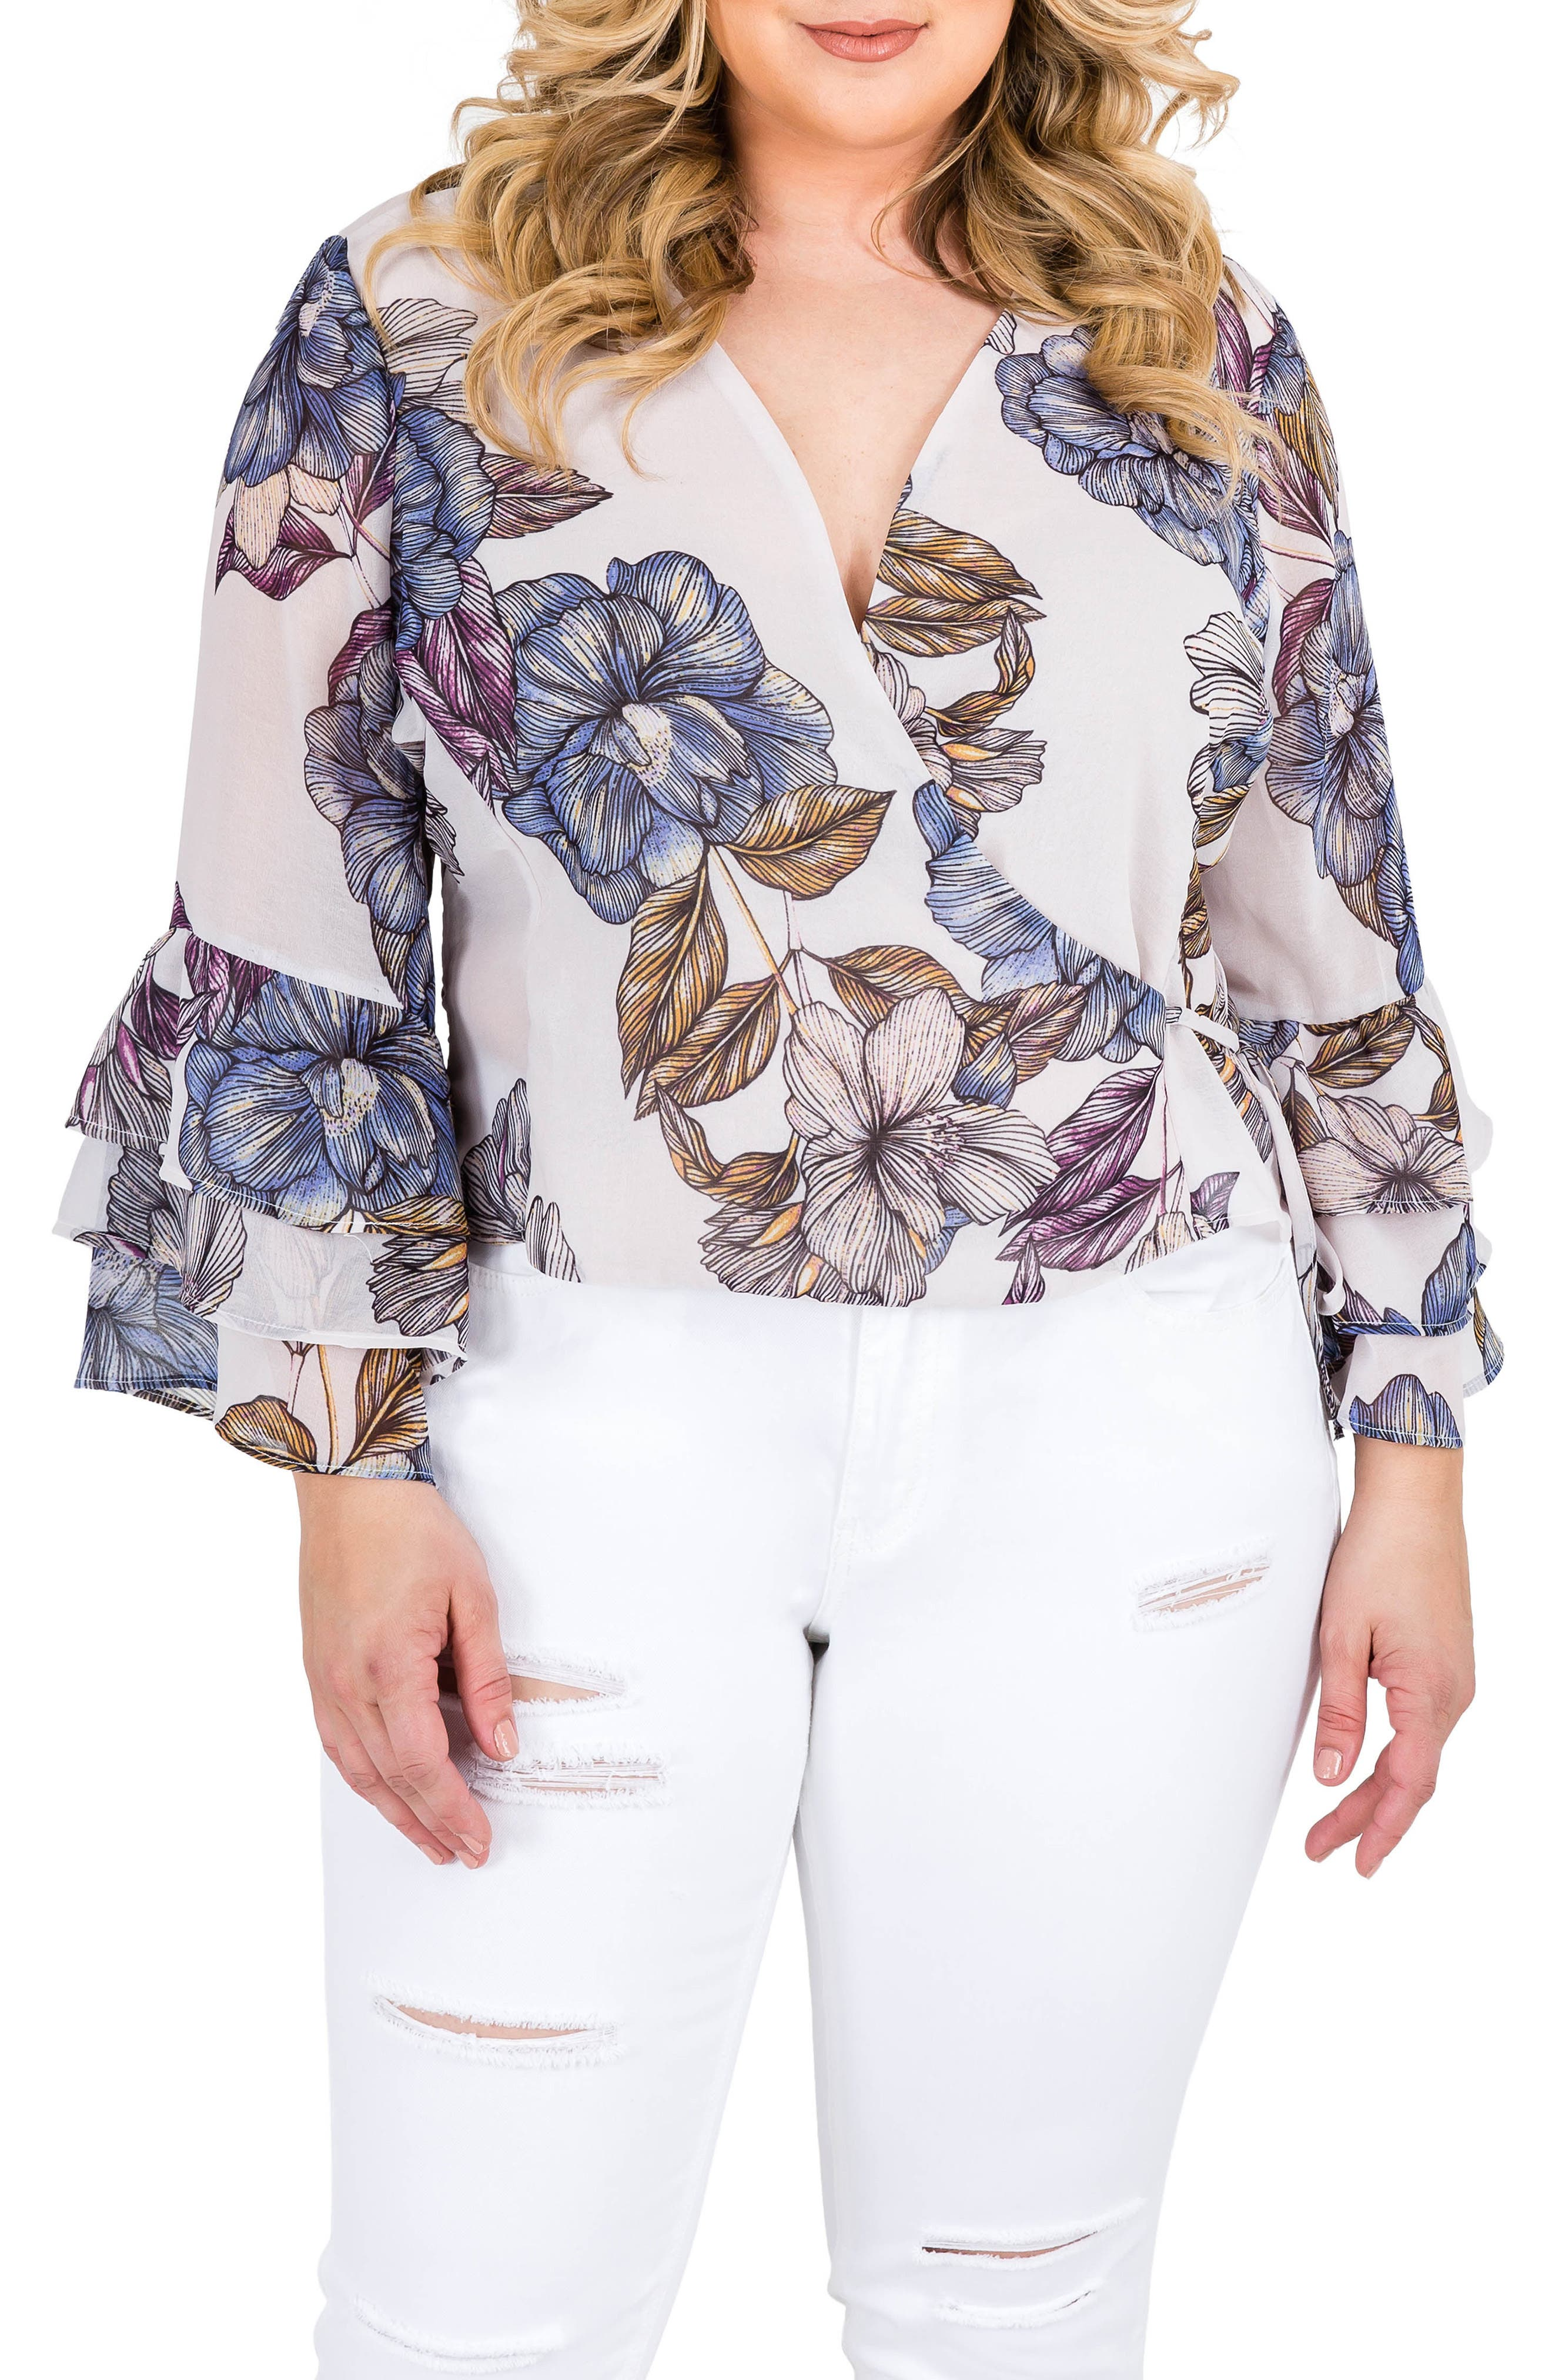 Miley Bell Sleeve Floral Wrap Top,                         Main,                         color, Light Gray Floral Print